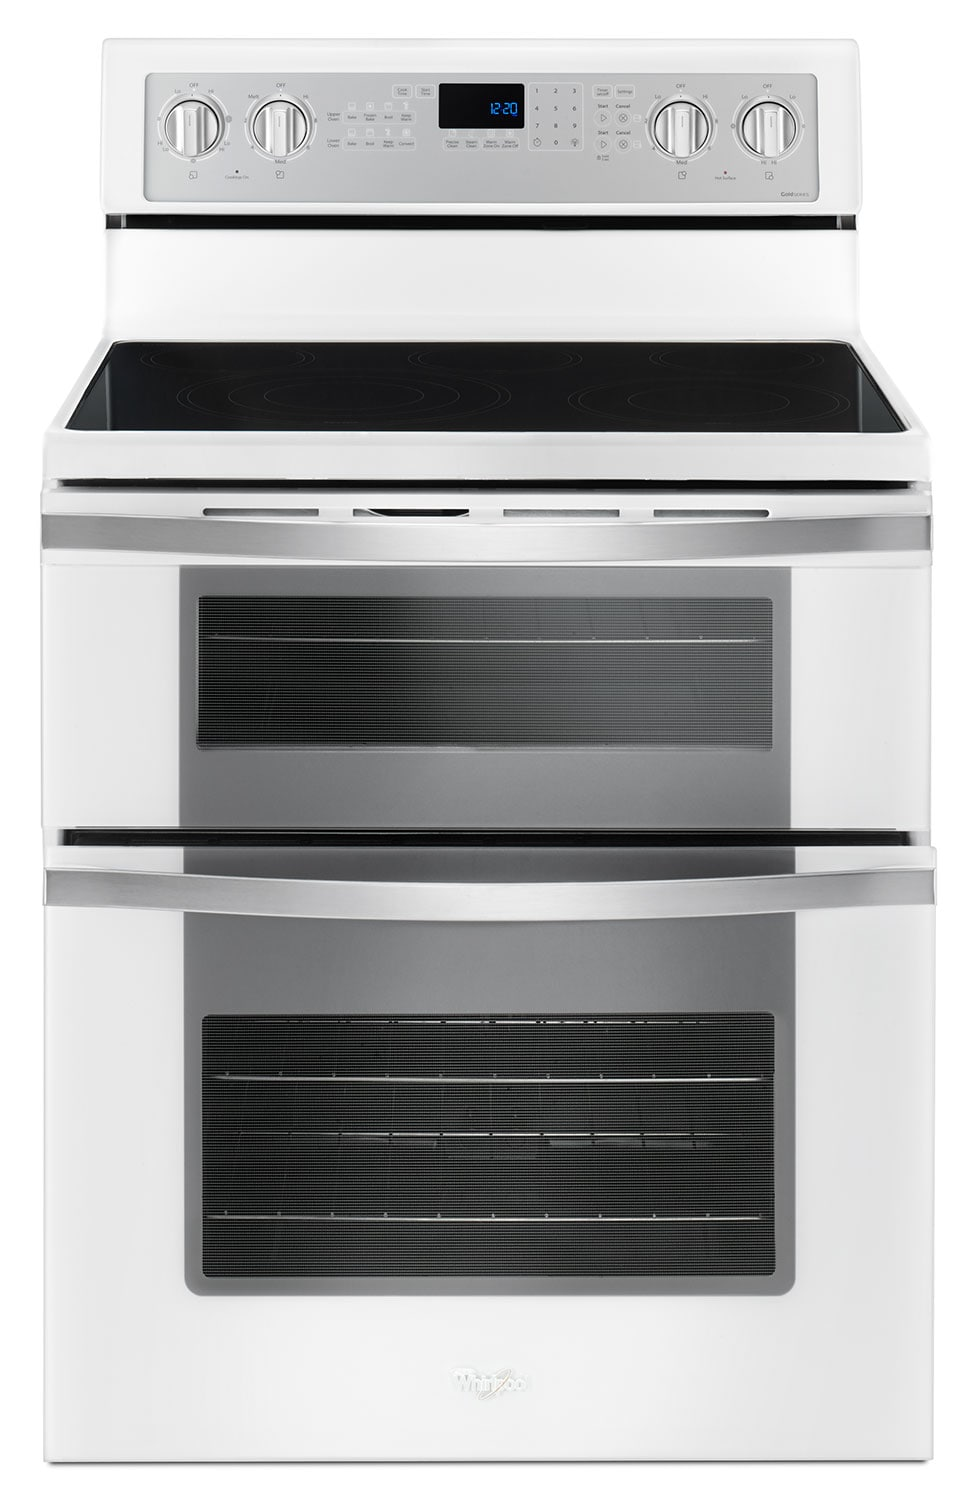 Whirlpool 6.7 Cu. Ft. Double Oven Electric Range – YWGE745C0FH